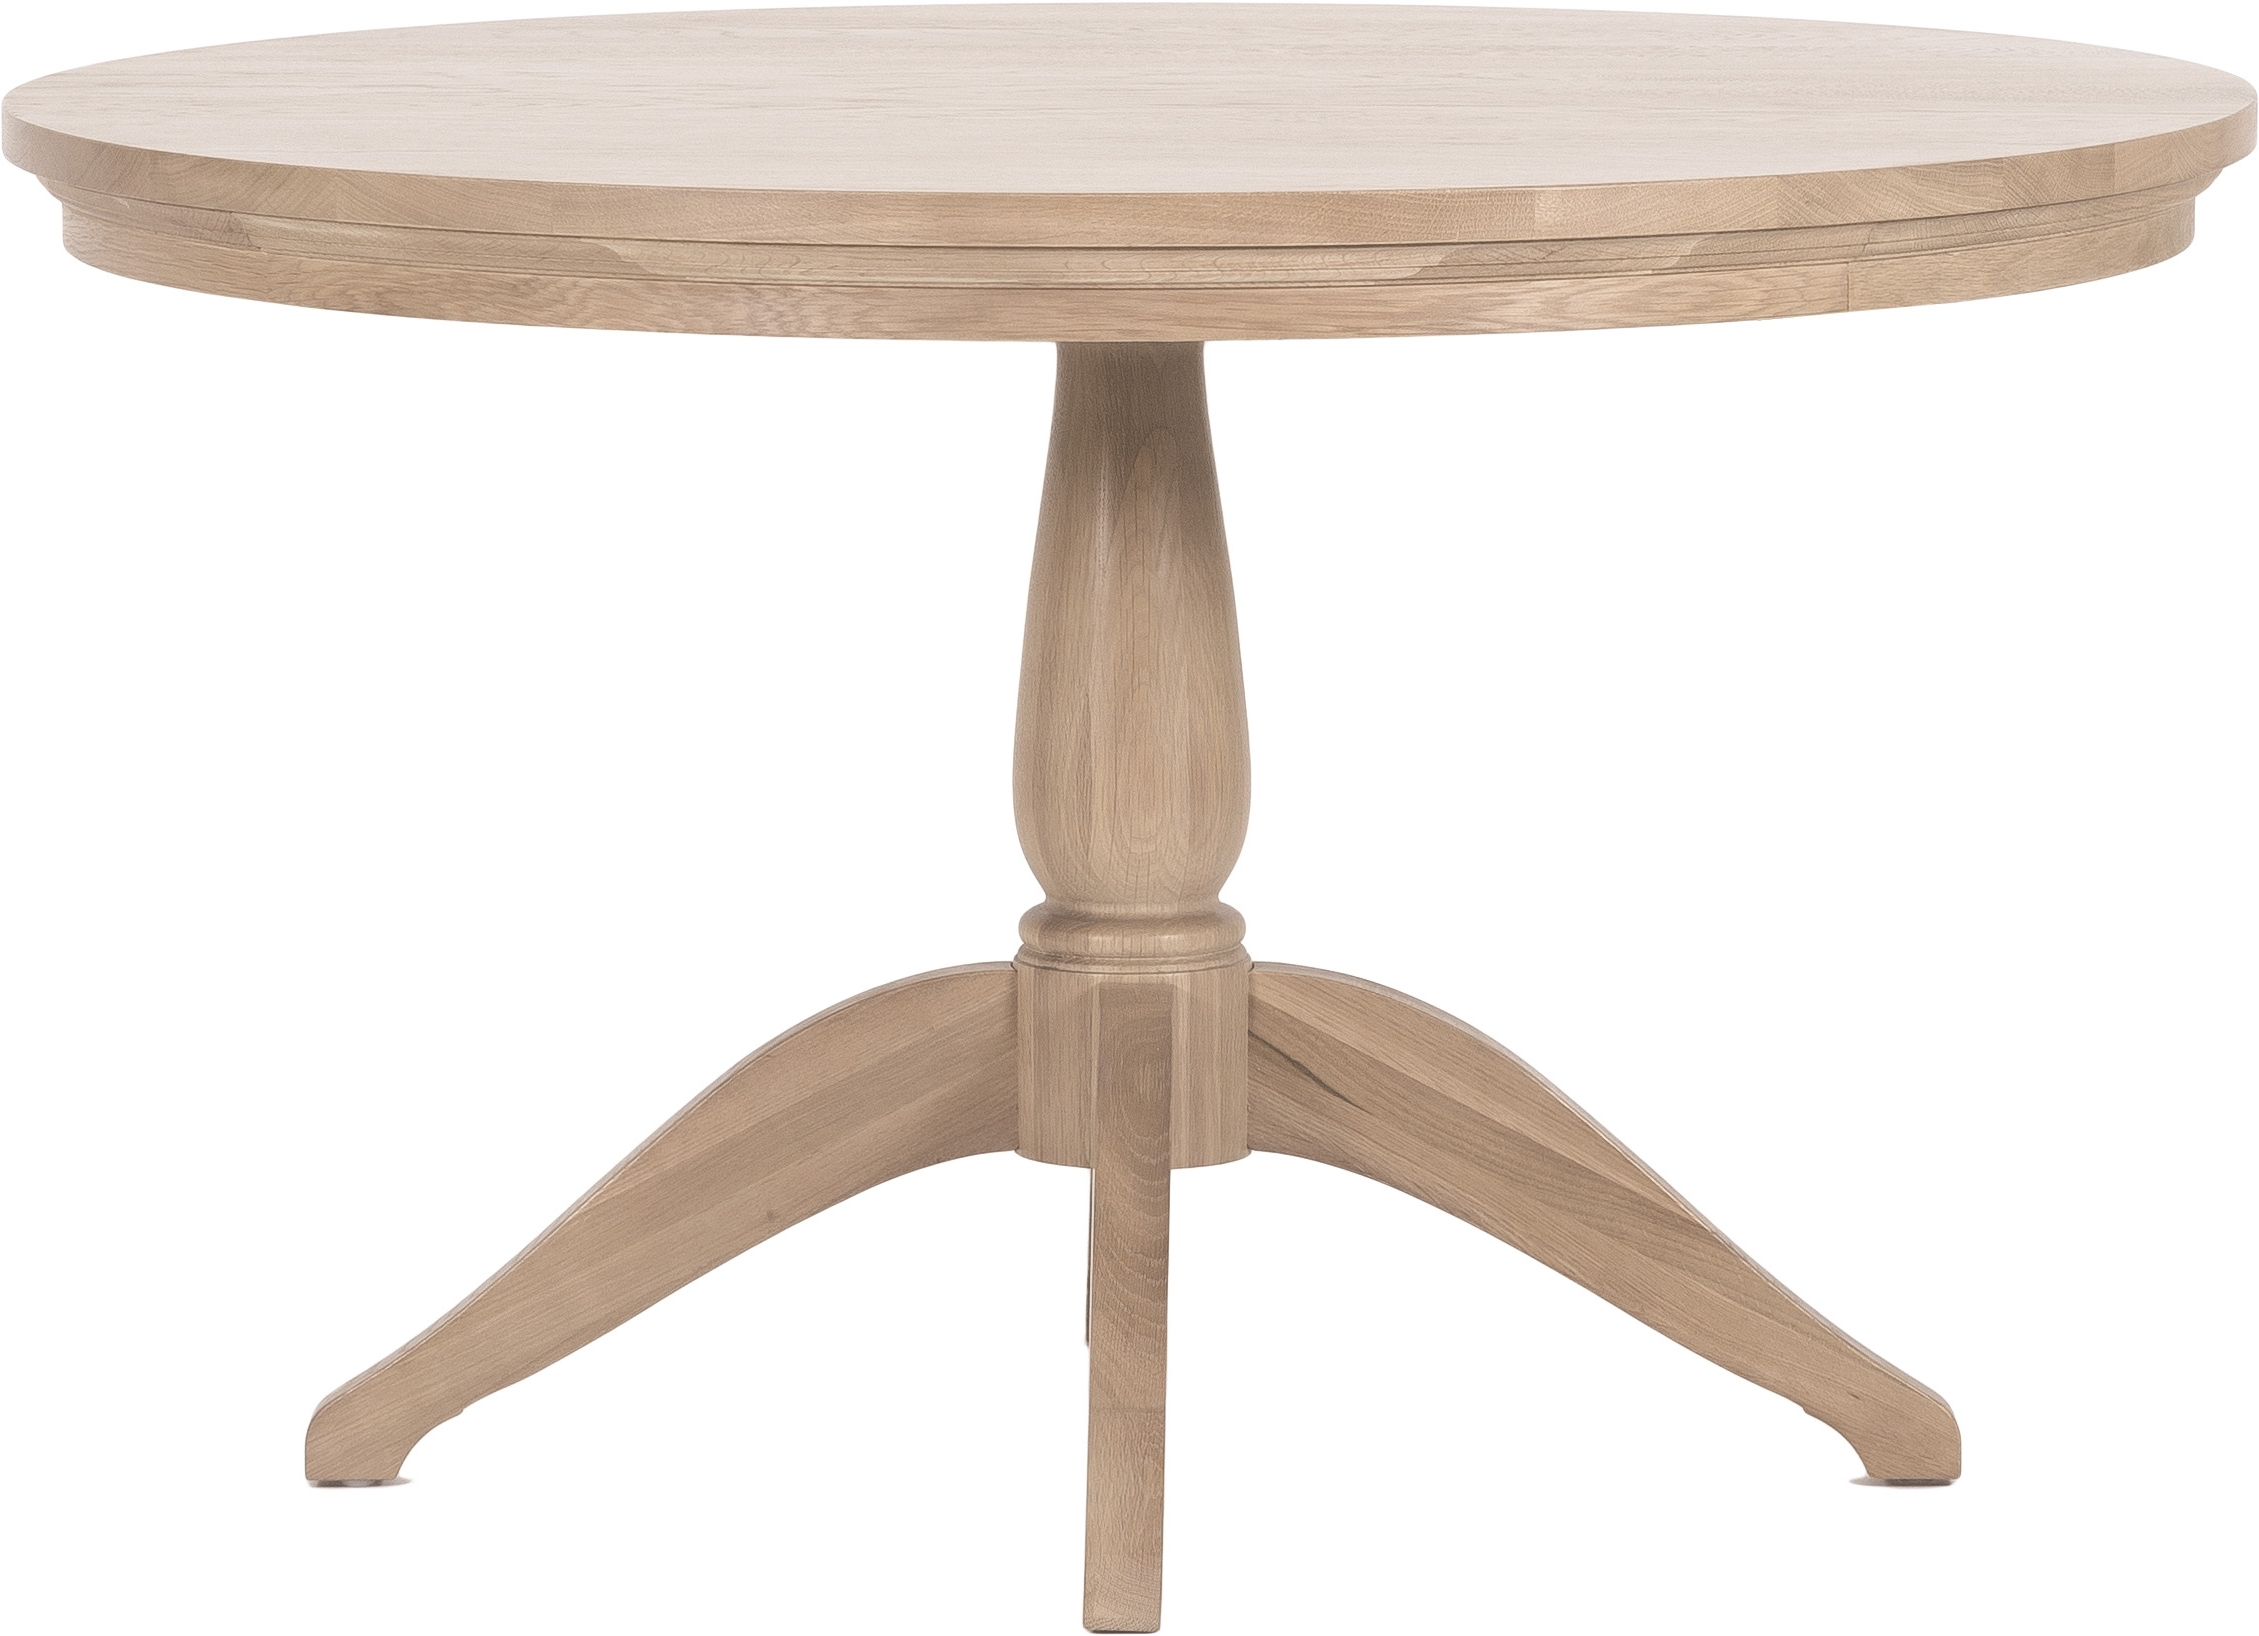 Well Known Circular Oak Dining Tables Within Henley Circular Oak Dining Table Uk (View 22 of 25)